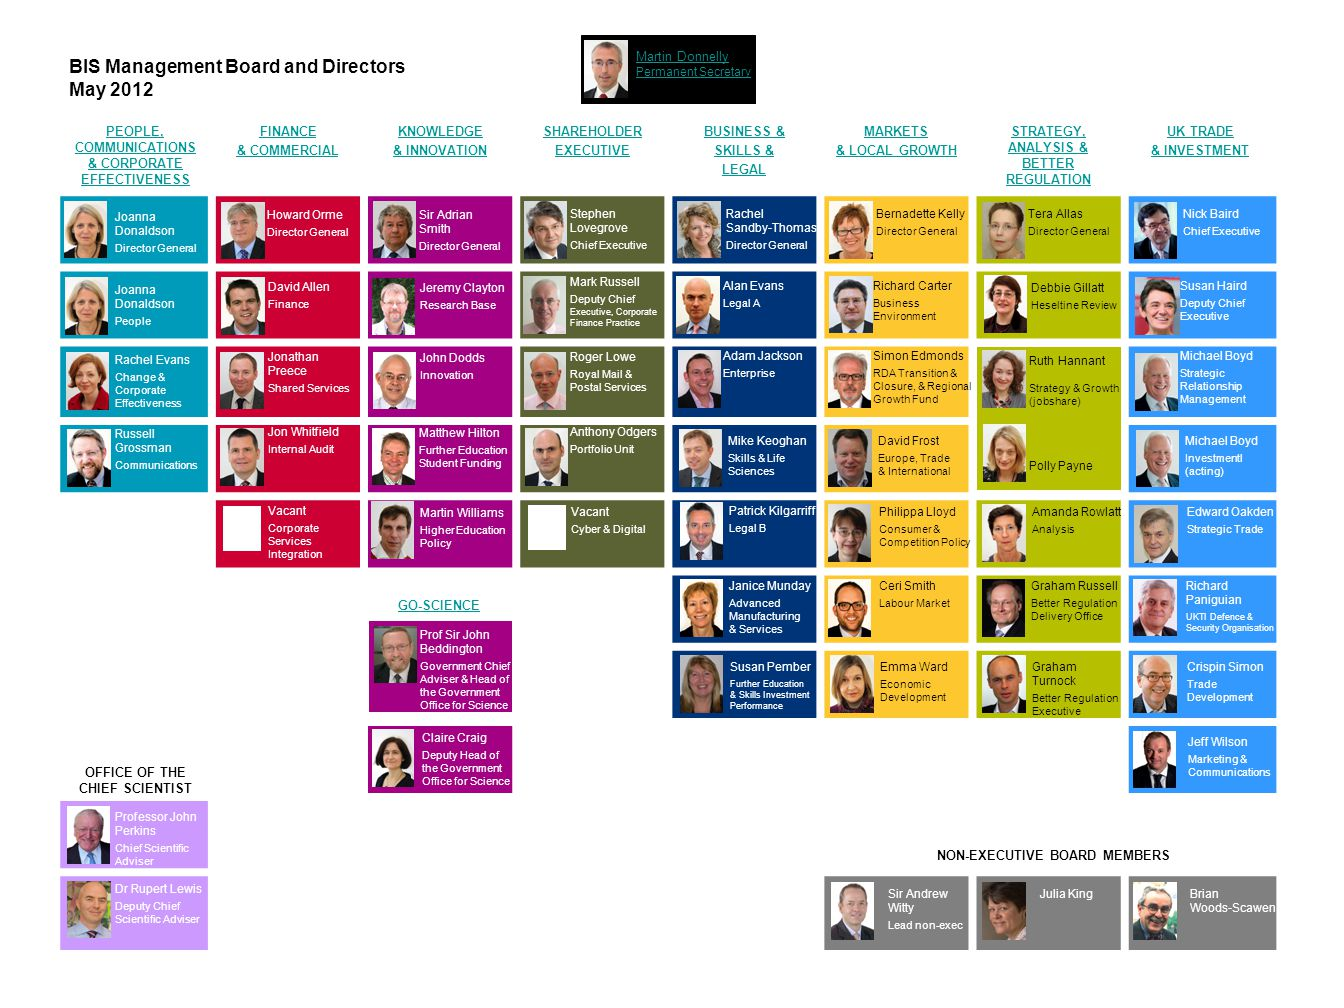 BIS Management Board and Directors May 2012 PEOPLE, COMMUNICATIONS & CORPORATE EFFECTIVENESS FINANCE & COMMERCIAL KNOWLEDGE & INNOVATION SHAREHOLDER E